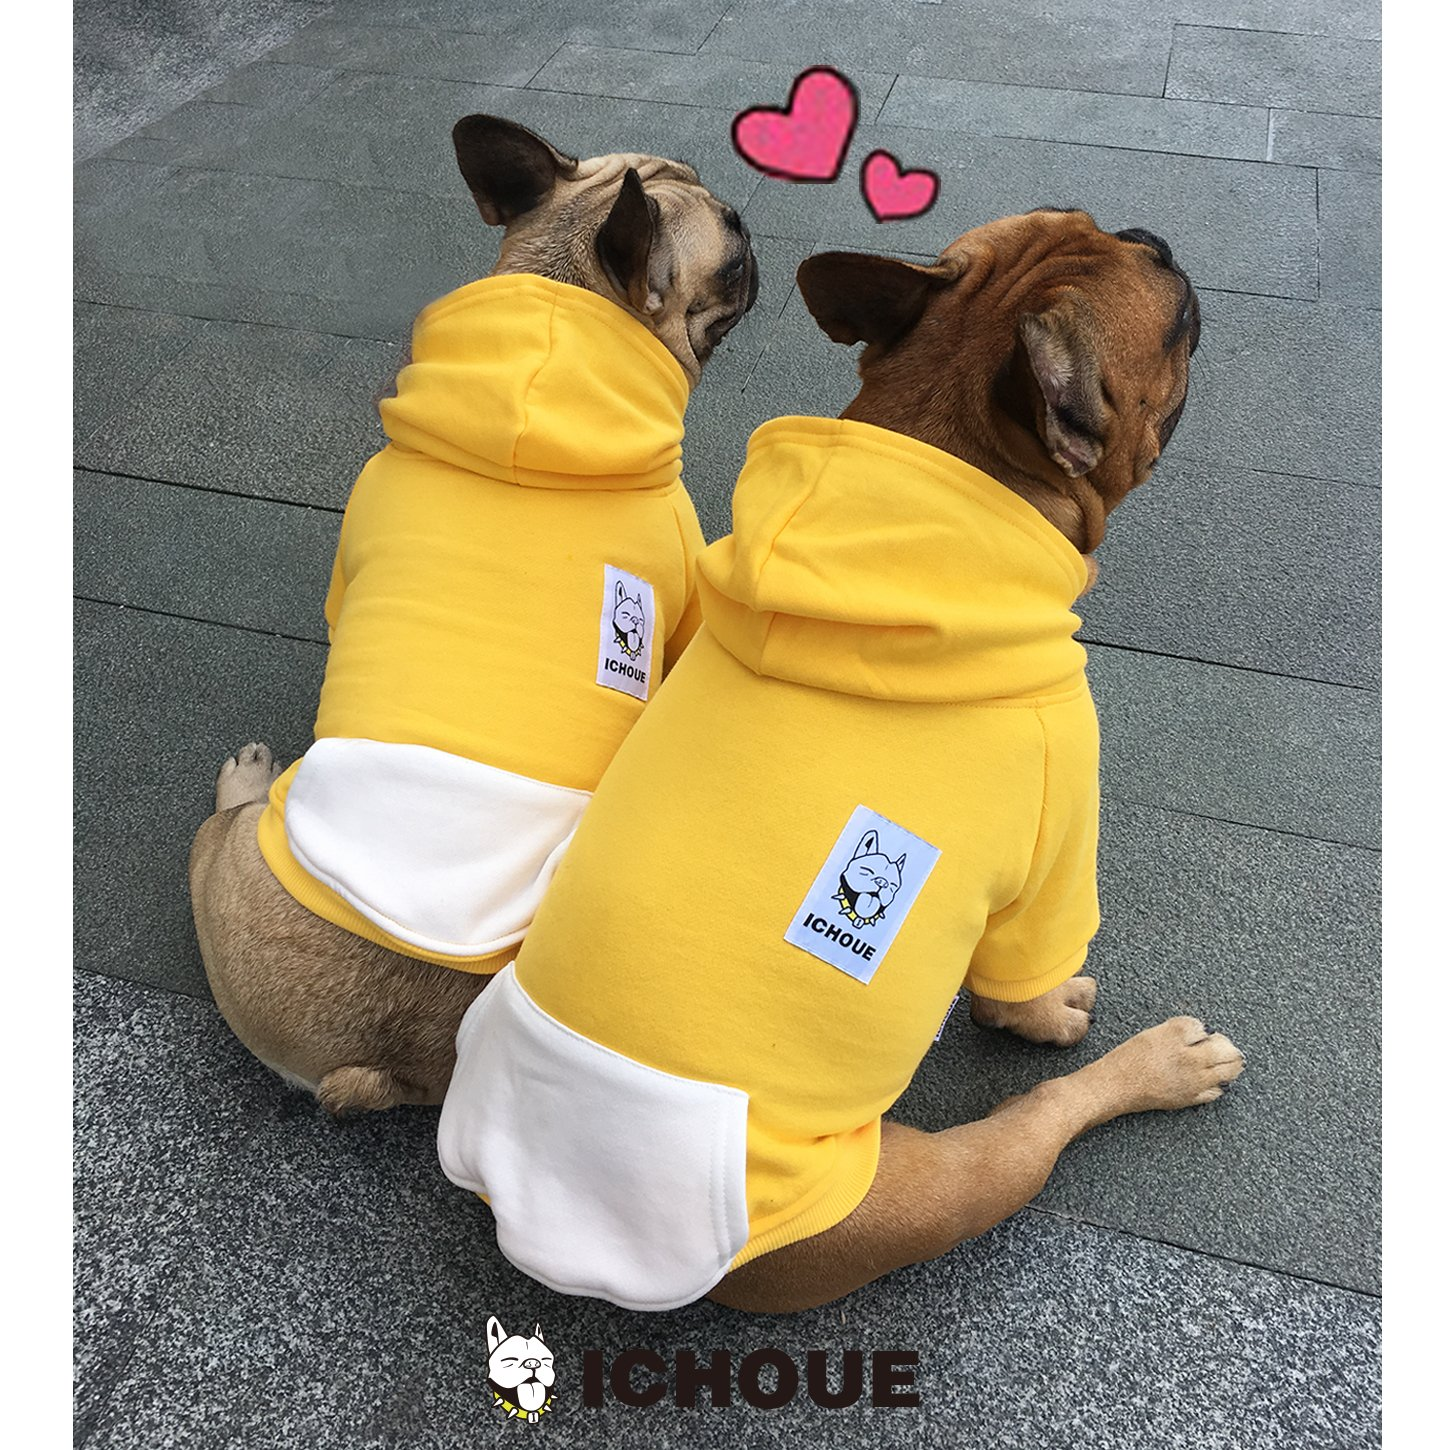 iChoue Pets Dog Clothes Hoodie Hooded French Bulldog Costume Pullover Cotton Winter Warm Coat Puppy Corgi Clothing - Yellow/Size M by iChoue (Image #6)